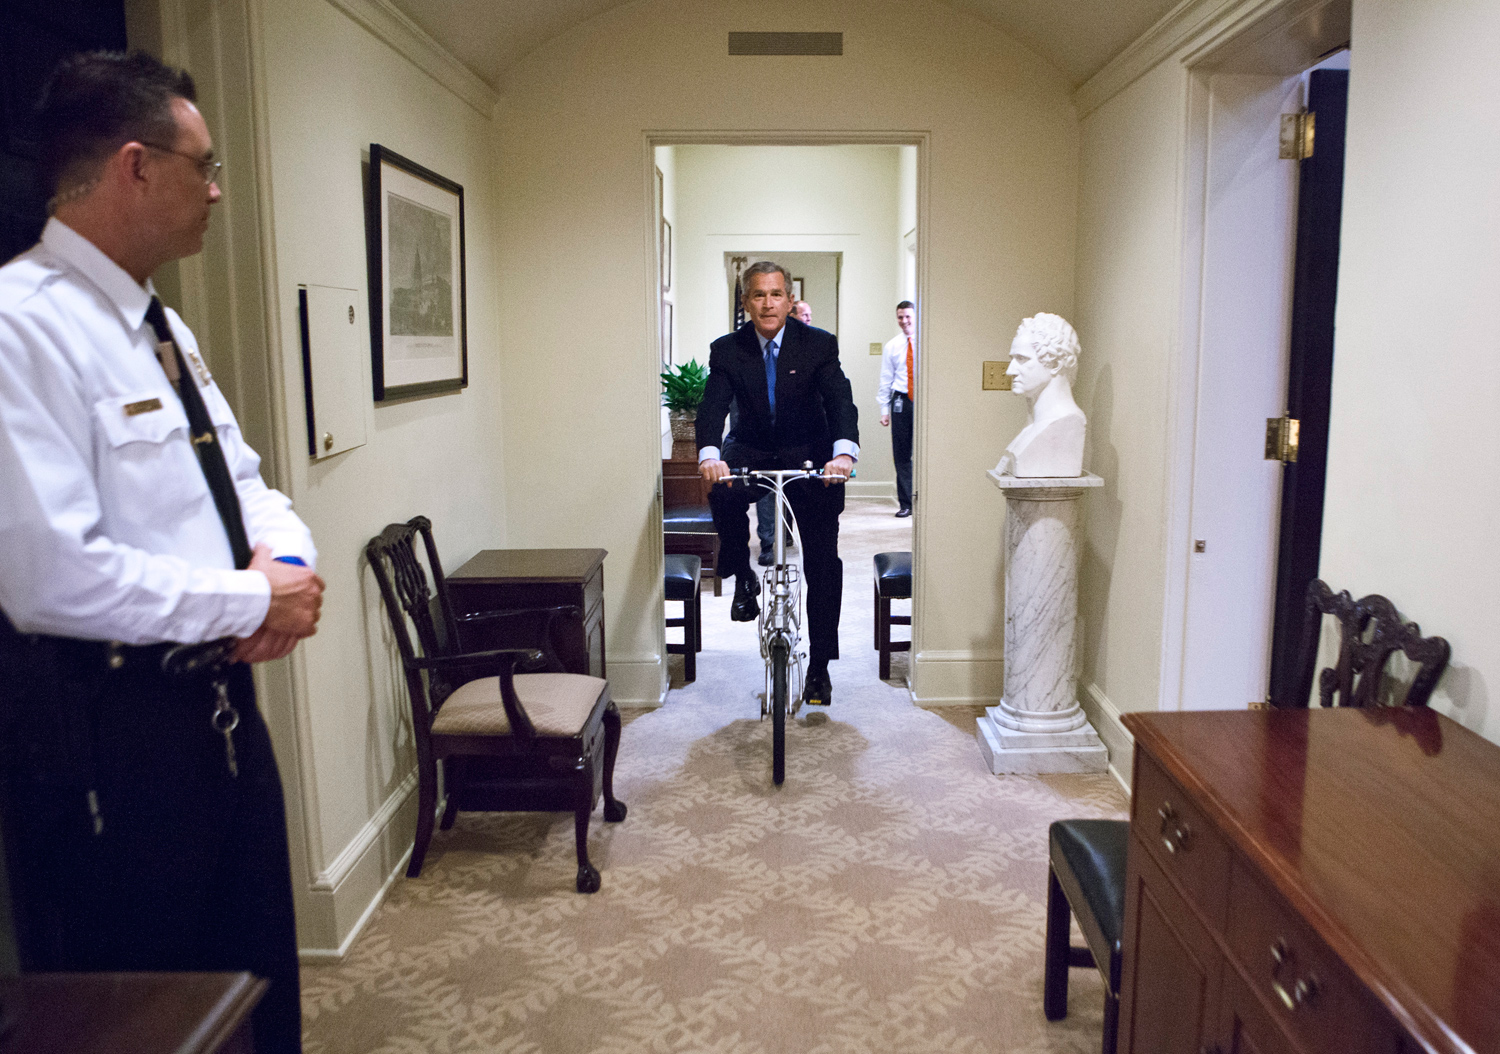 "July 12, 2005. President Bush enjoys a break in his afternoon schedule as he rides a fold-up bike, given by Prime Minister Lee Hsien Loong of Singapore.""He unfolded a bike out of a box -- a gift from the Prime Minister of Singapore -- and took it for a spin in the Oval Office and the hallway. It was funny watching a nearby Secret Service Agent try to keep a straight face with the President riding by."""